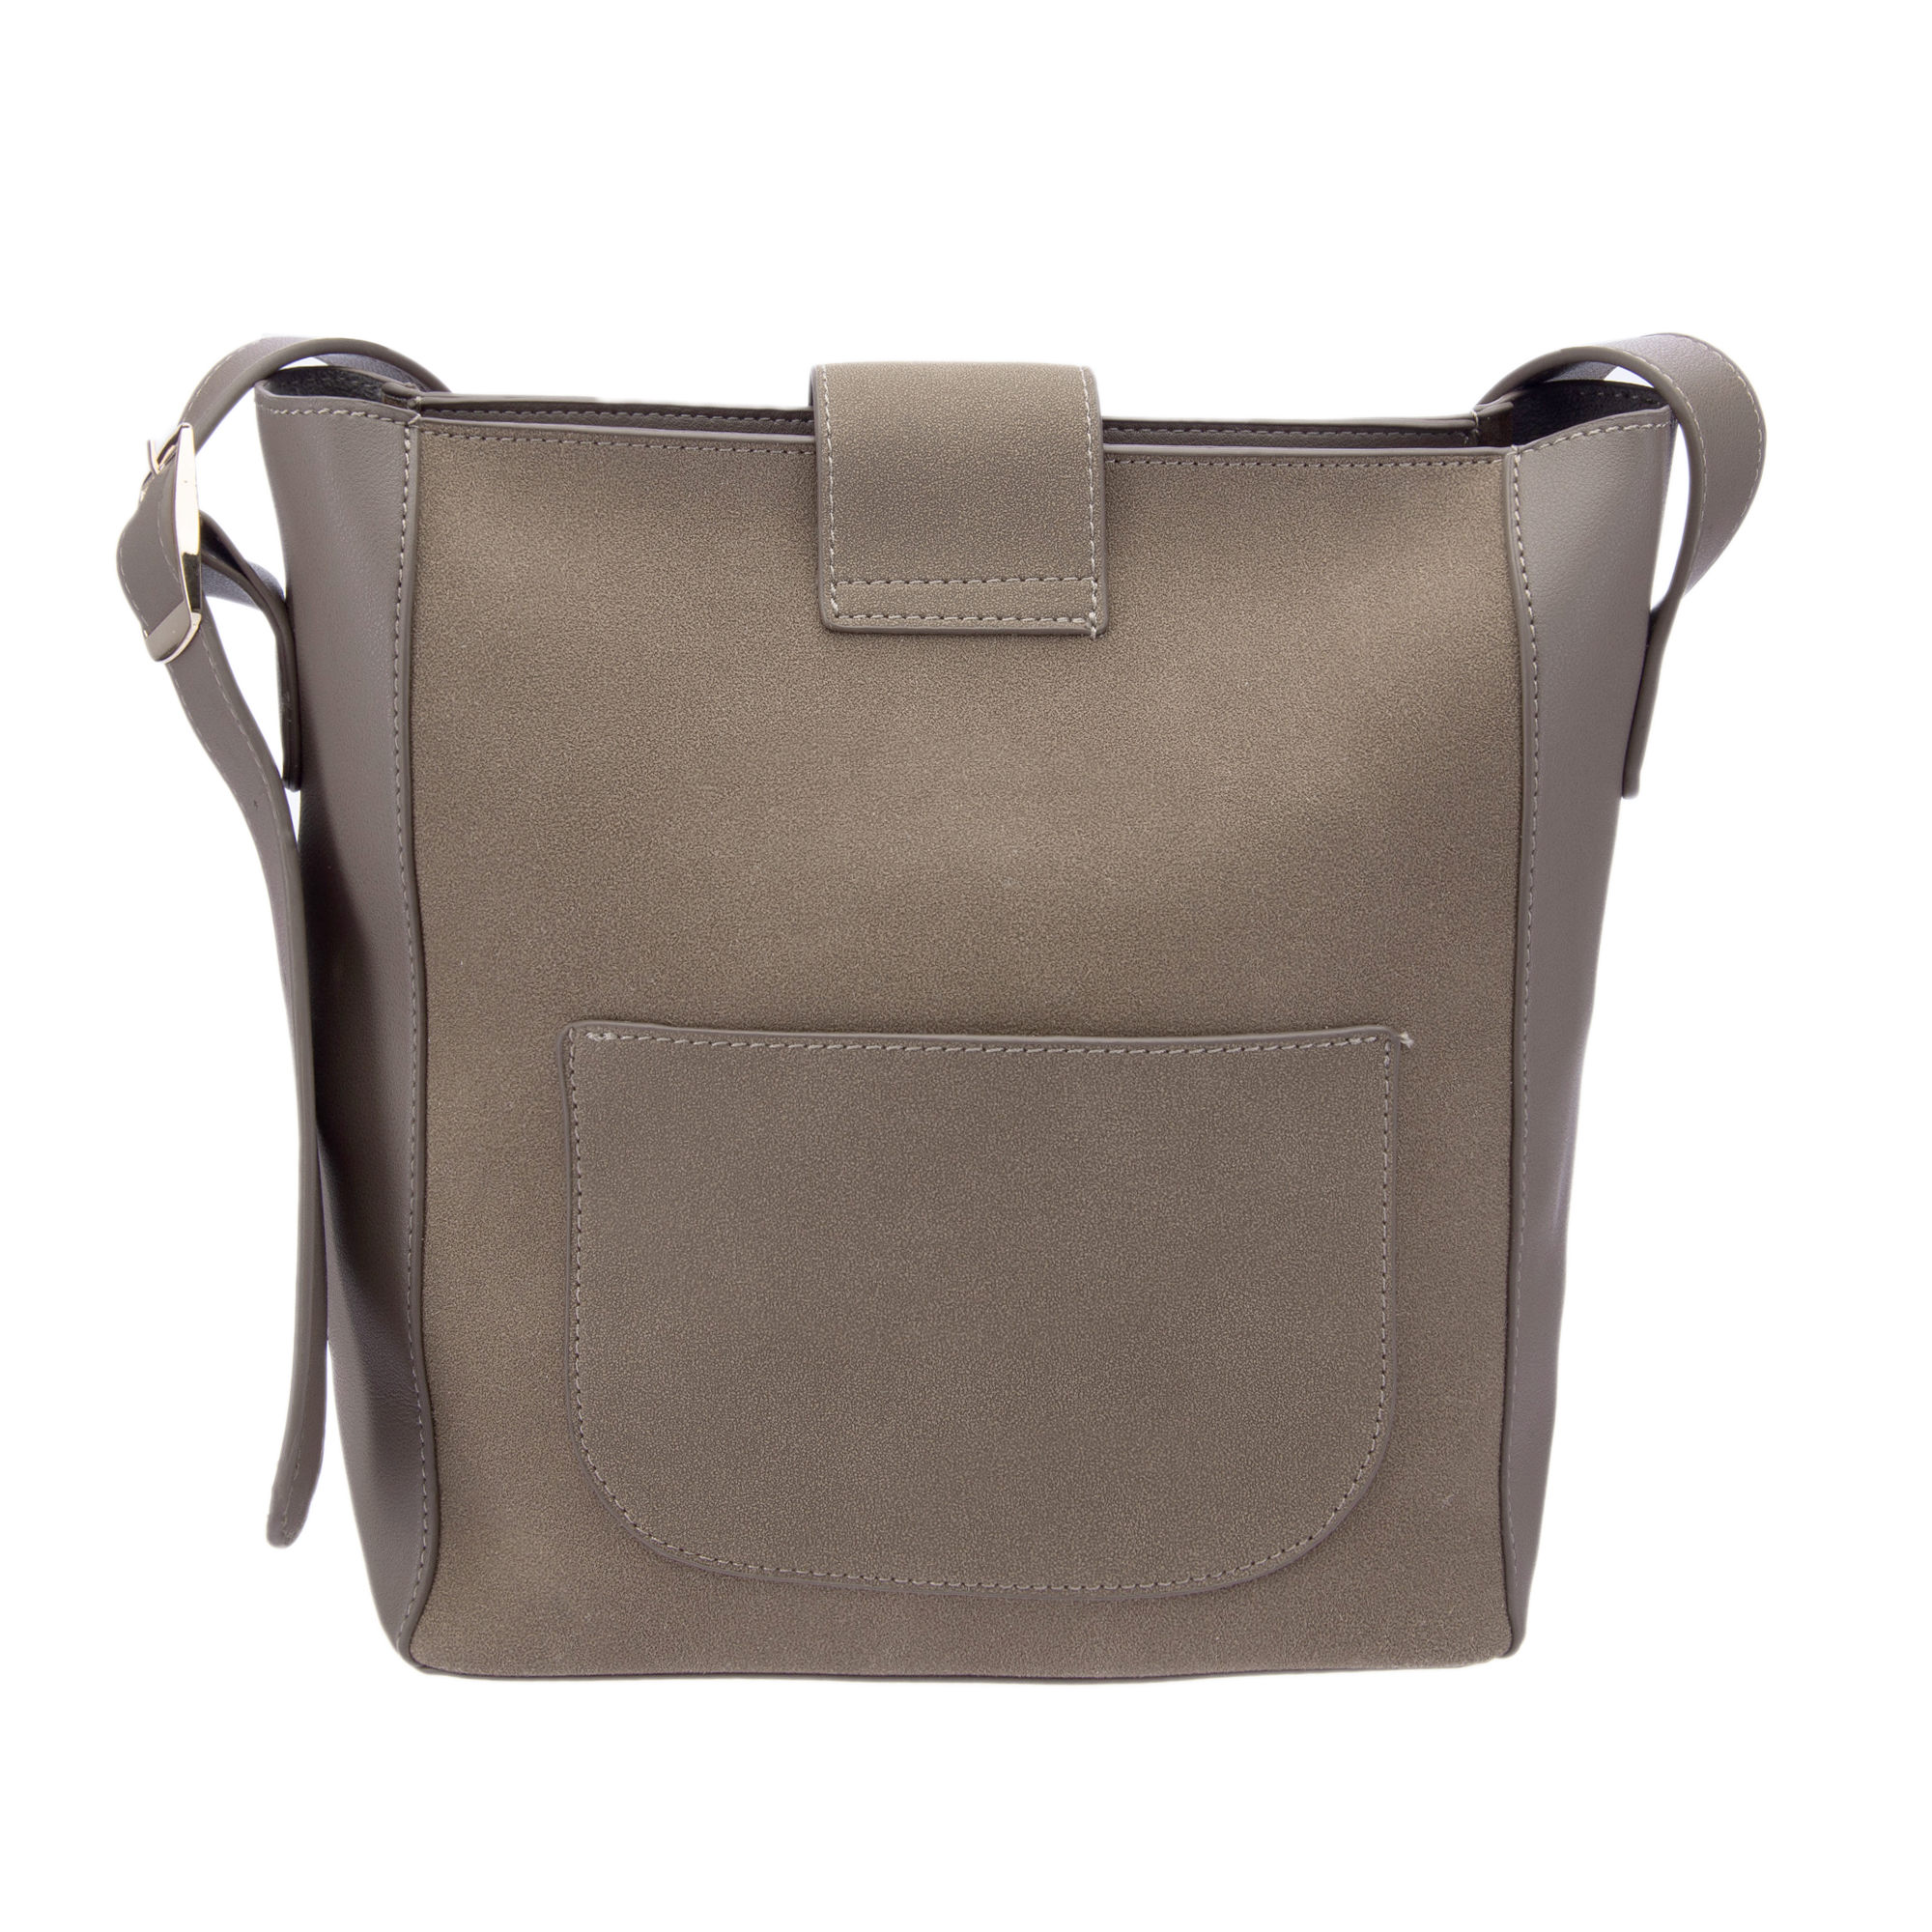 Tracey Star Trendy Bag with Small Usage Bag